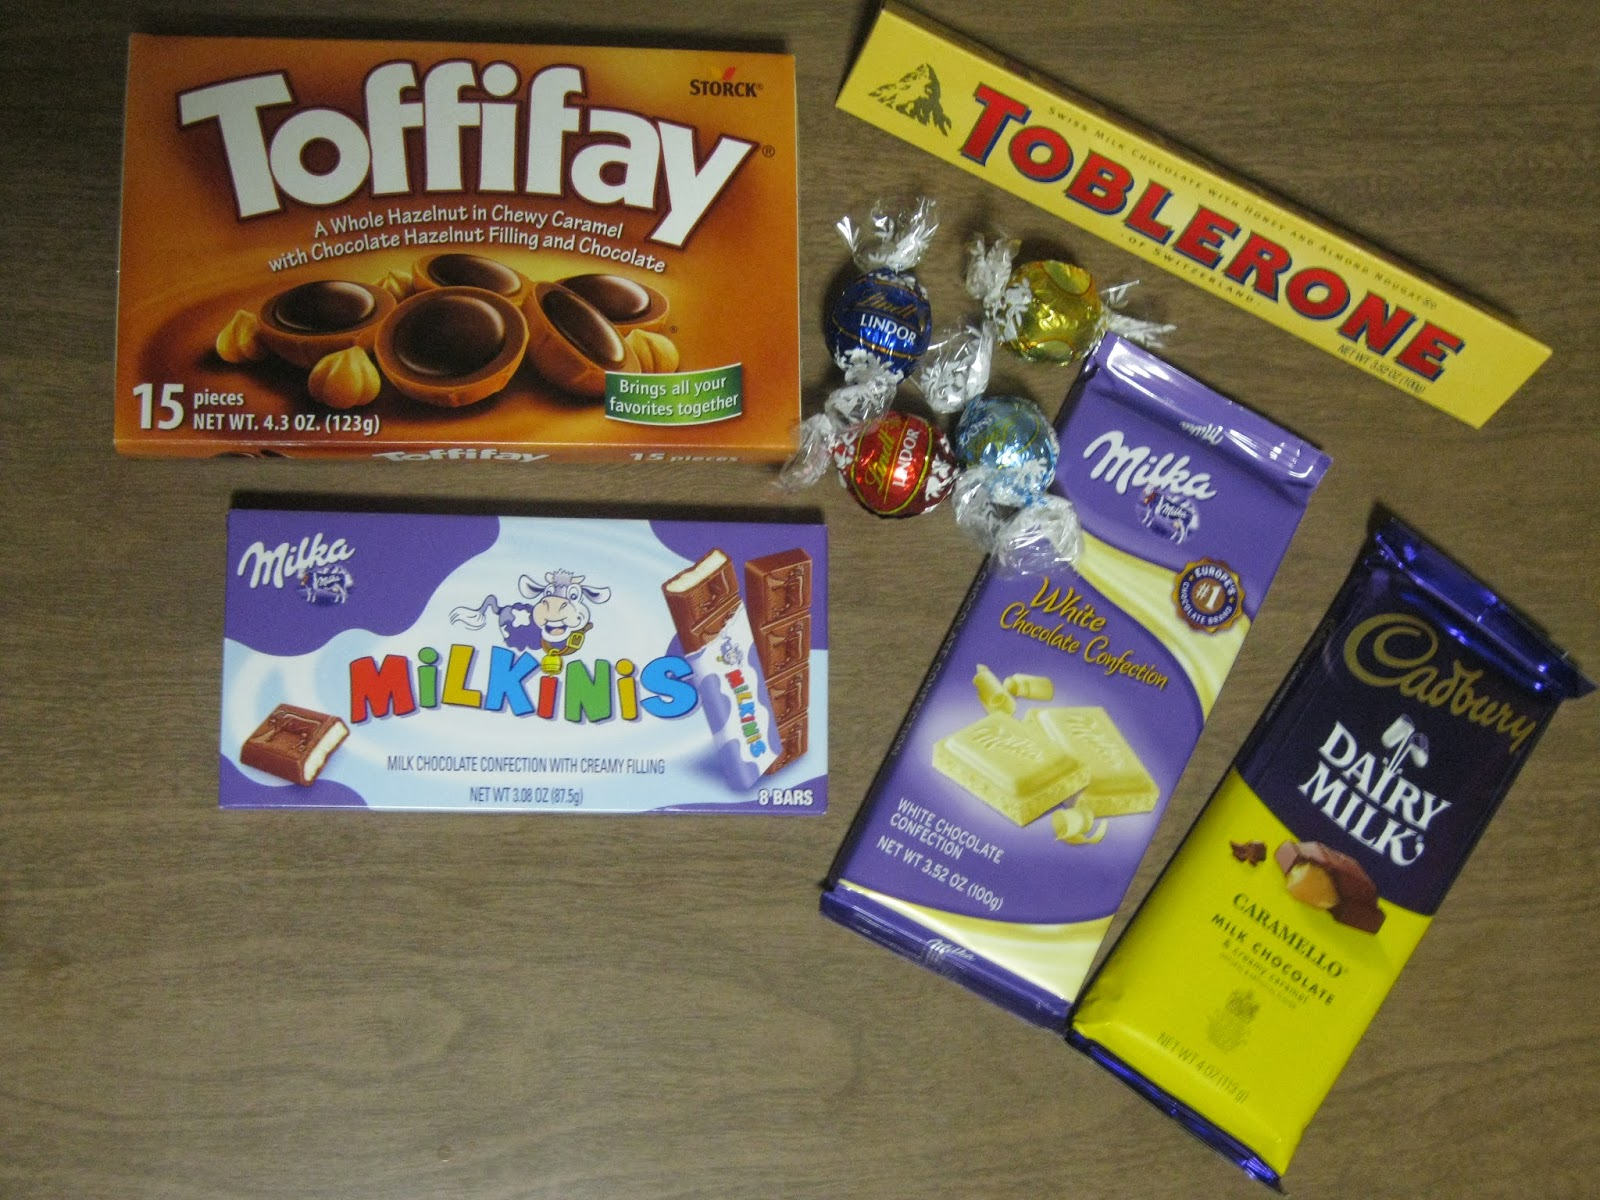 With This Package I Didnt Want To Go With The Usual American Candy So I Splurged And Got The Really Good European Stuff You Could Use Any Kind Of Candy